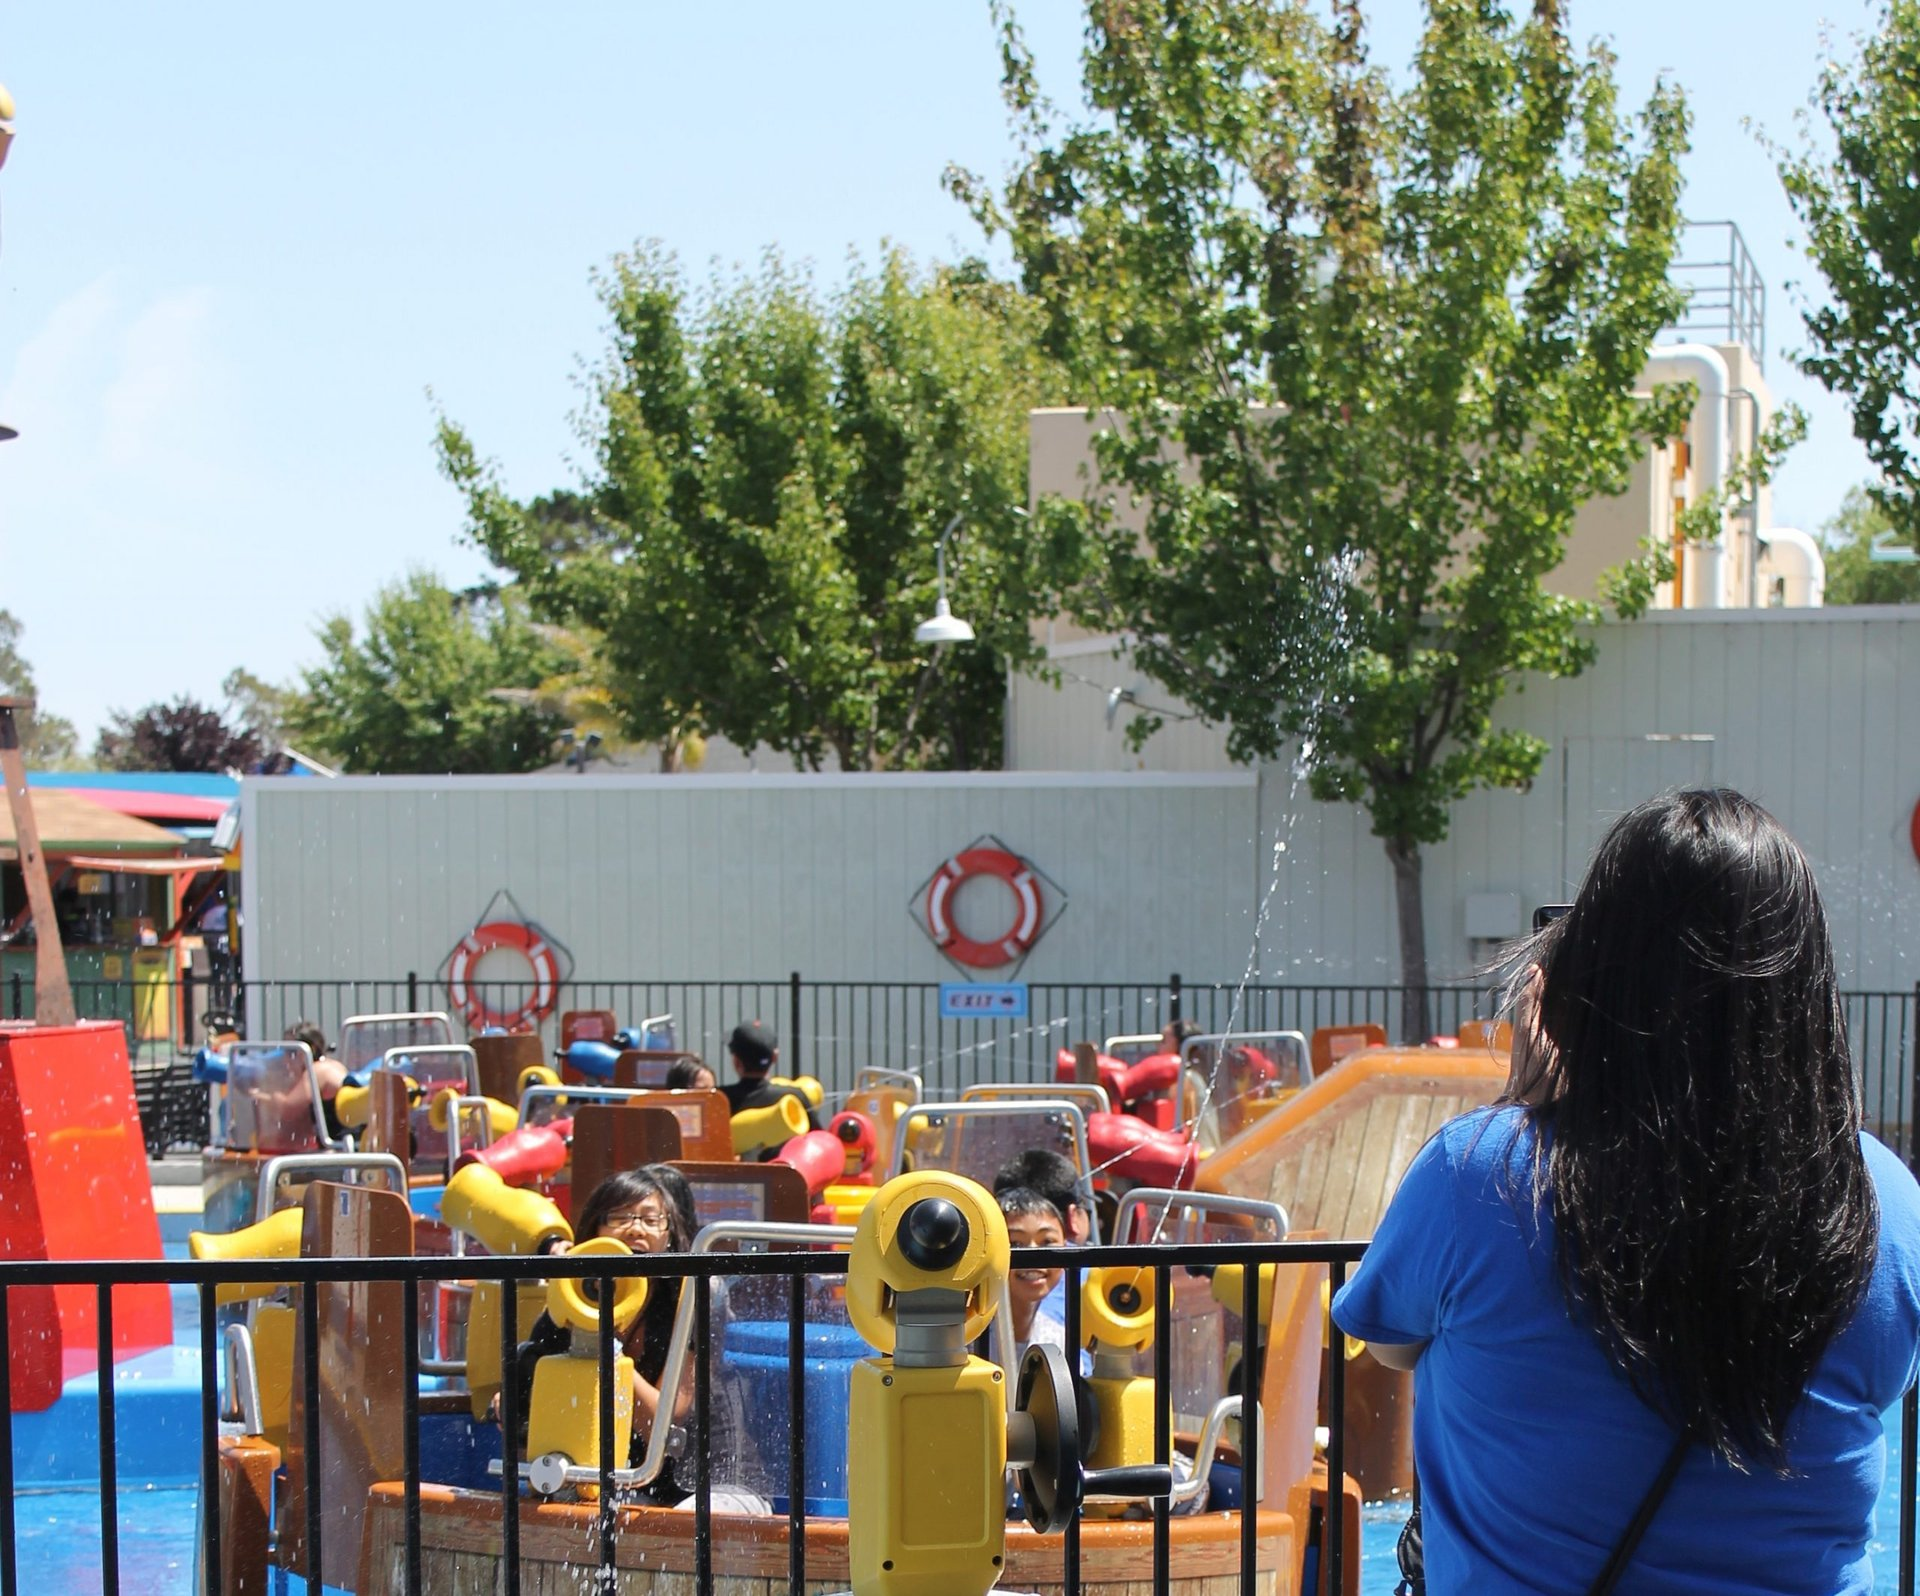 The Penguin, a water ride at Six Flags Discovery Kingdom in Vallejo, CA.